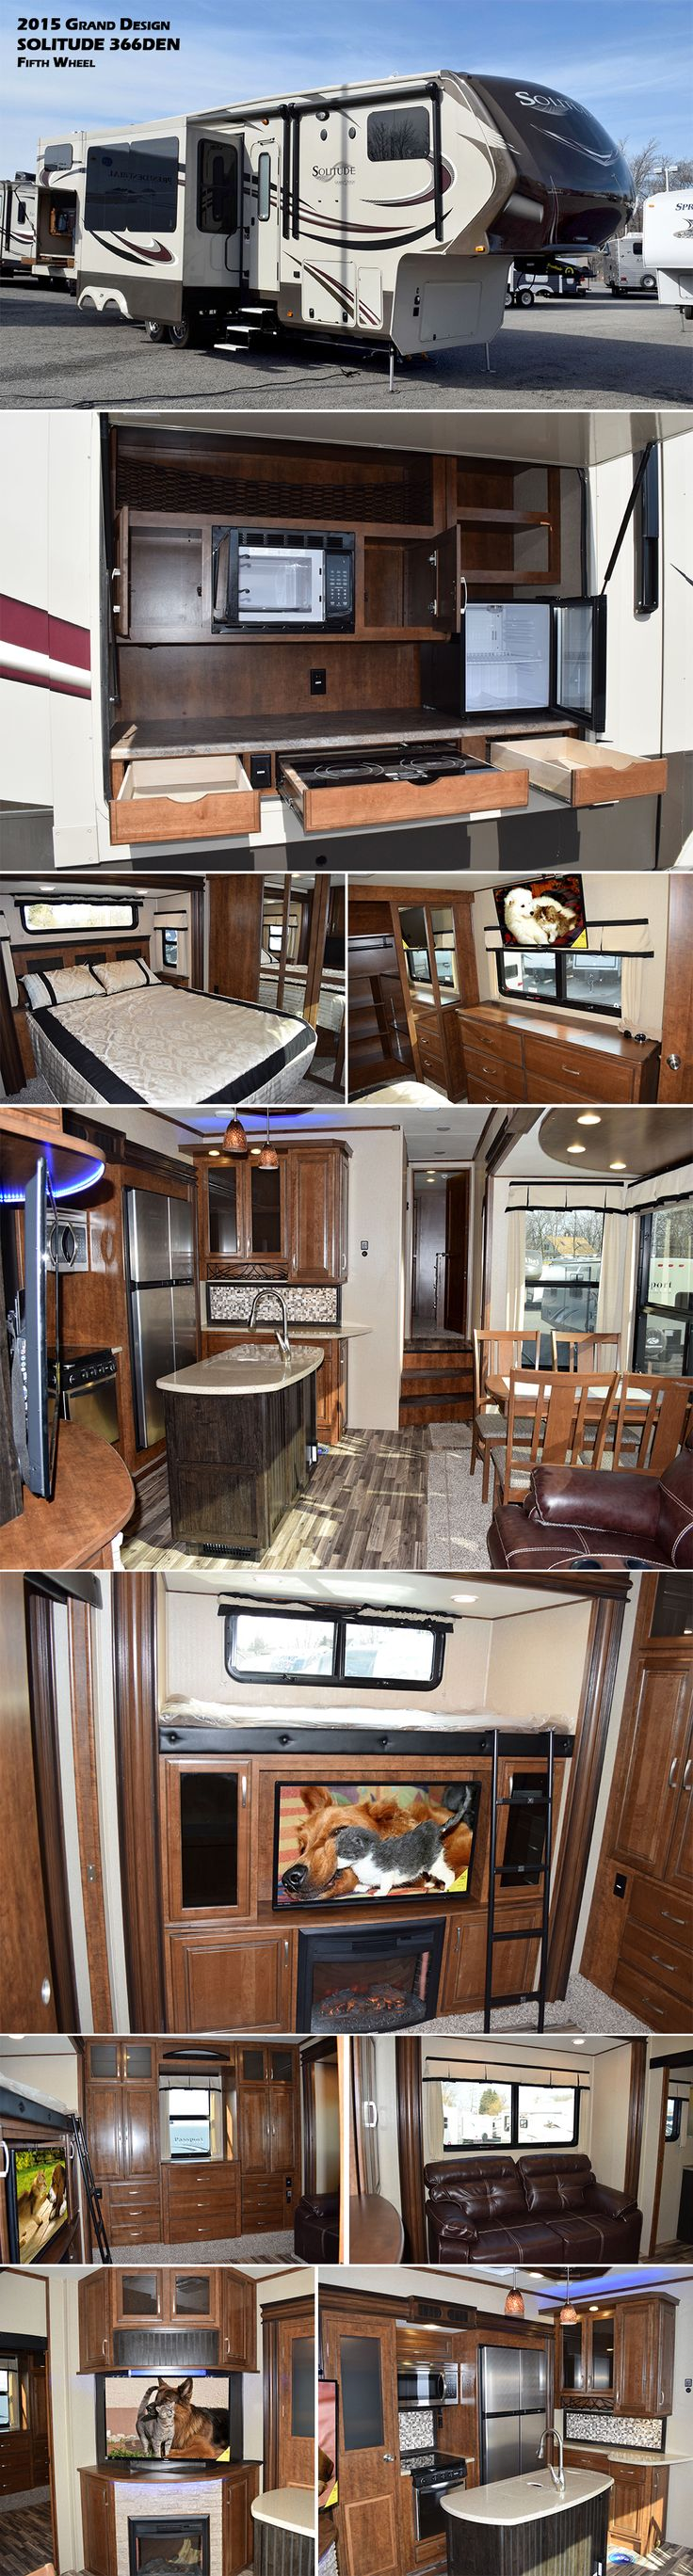 This Grand Design SOLITUDE 366DEN Fifth Wheel has everything you and your guests will need to enjoy any camping trip you take. Enjoy a spacious kitchen and living area featuring a fireplace with LED TV above. Back through to the very rear you will find a private living area bunk room with its own entertainment center and fireplace. Off this room is a convenient half bath! On the outside enjoy cooking with the outdoor kitchen which has a two burner stove top, microwave oven, and refrigerator.